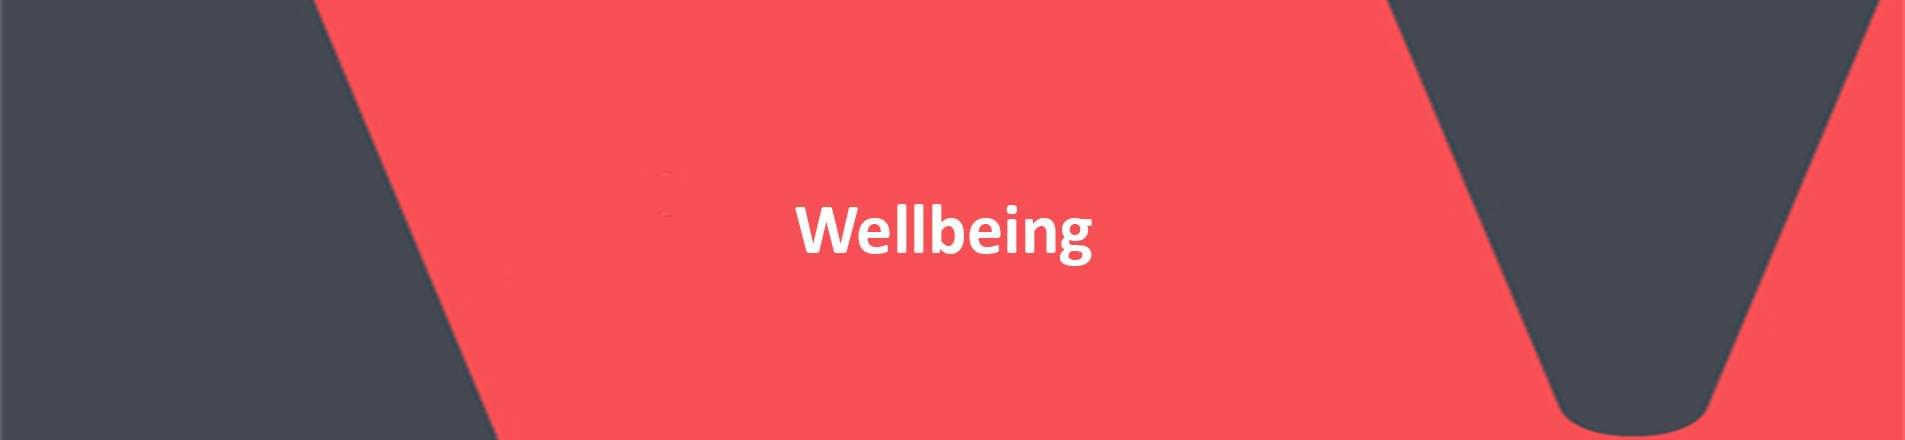 The word wellbeing on a red VERCIDA branded background